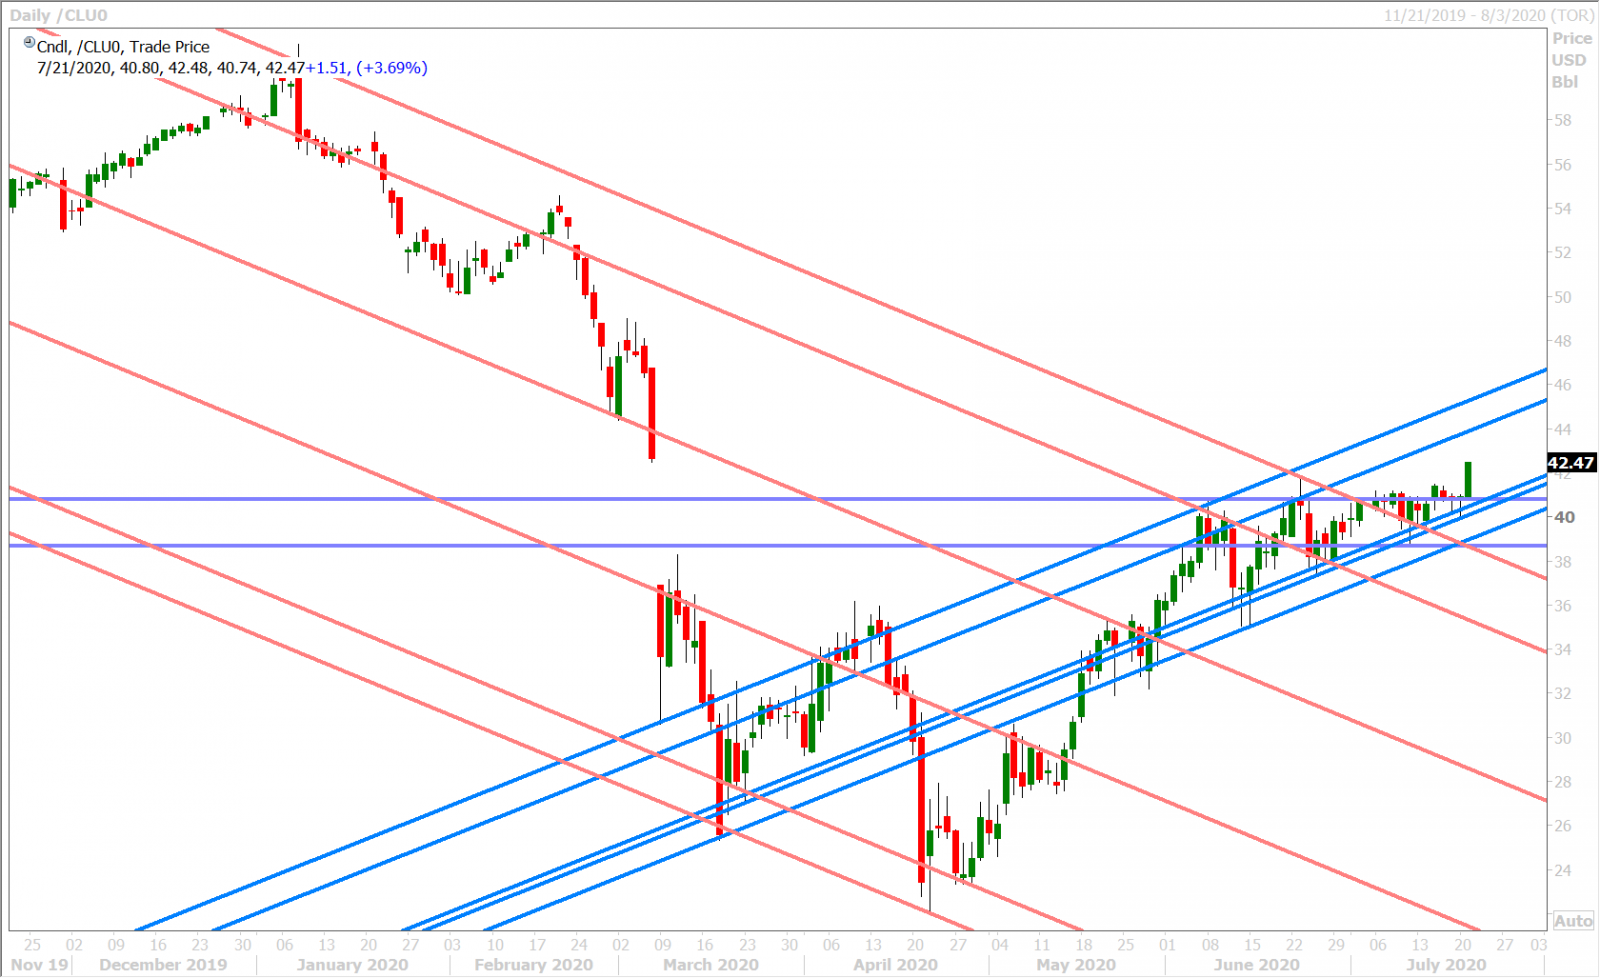 SEPT CRUDE OIL DAILY